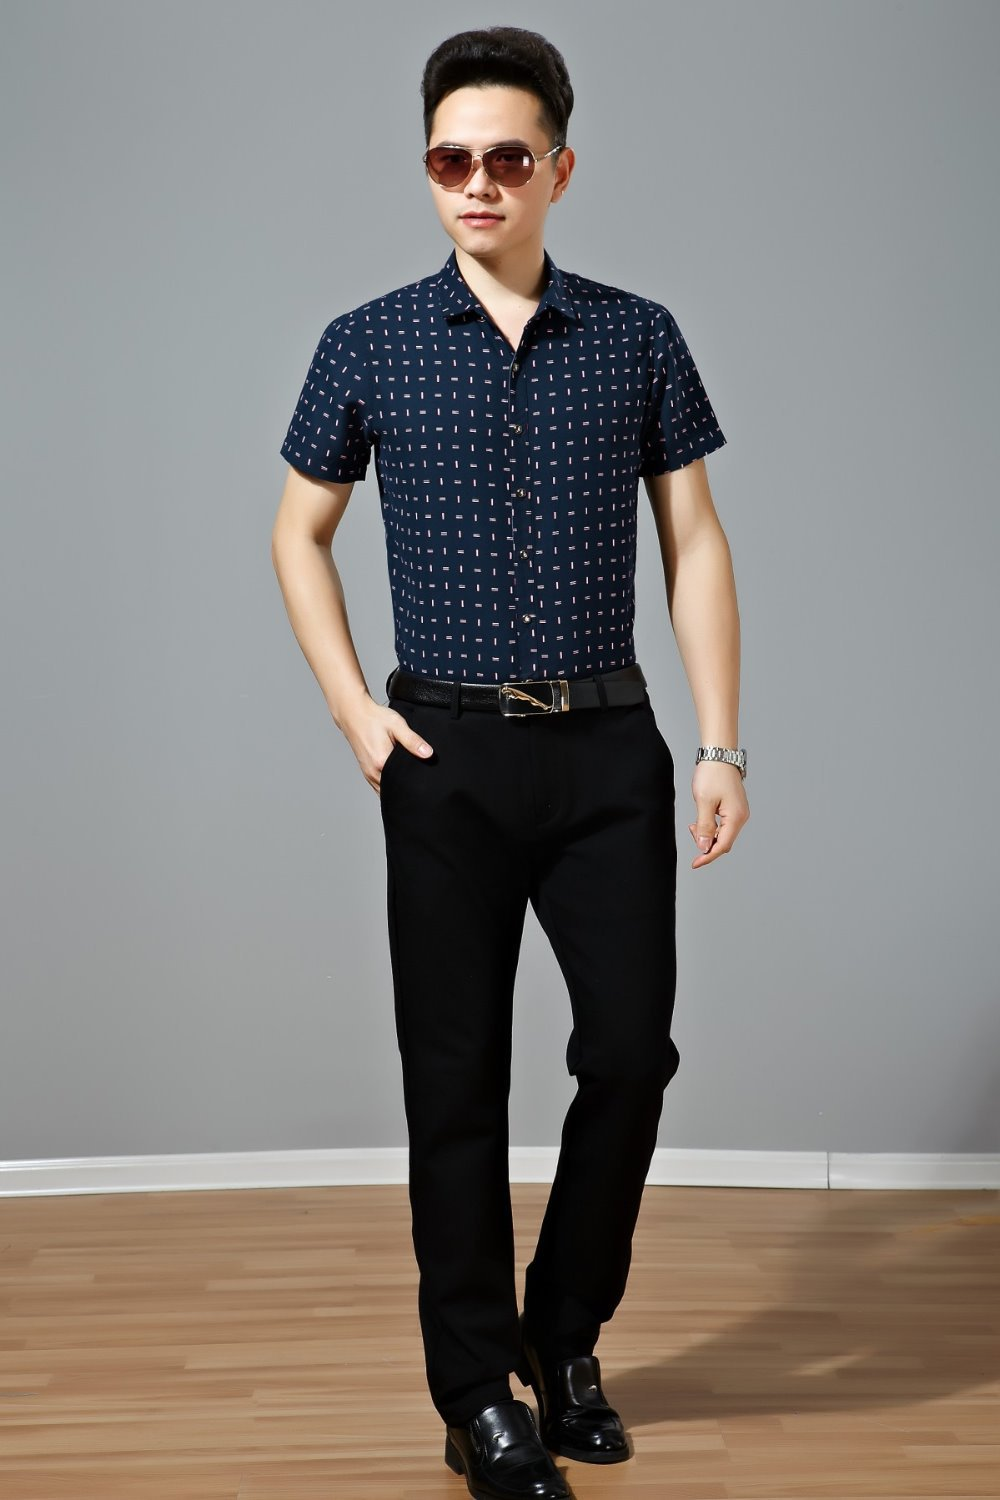 Traditional 100 Conton Summer Business Casual Wear Men Short Sleeve Shirt High Quality Polka Dot Y In Dress Shirts From S Clothing